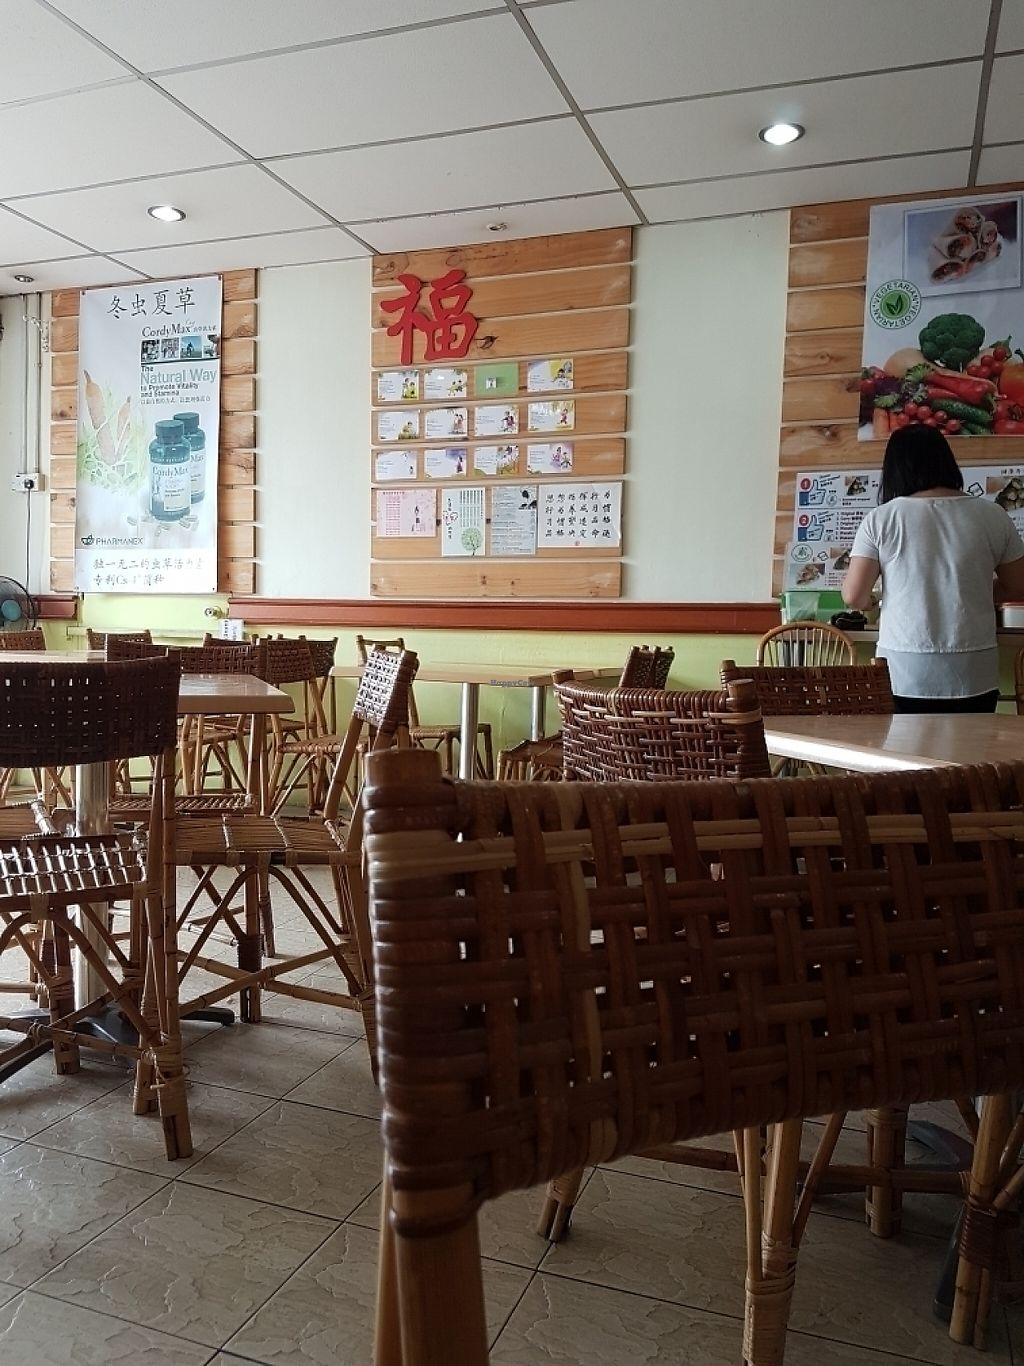 """Photo of Jing Si Vegetarian  by <a href=""""/members/profile/Raycklim01%40gmail.com"""">Raycklim01@gmail.com</a> <br/>speciality - sushi Popiah  <br/> May 9, 2017  - <a href='/contact/abuse/image/19728/257307'>Report</a>"""